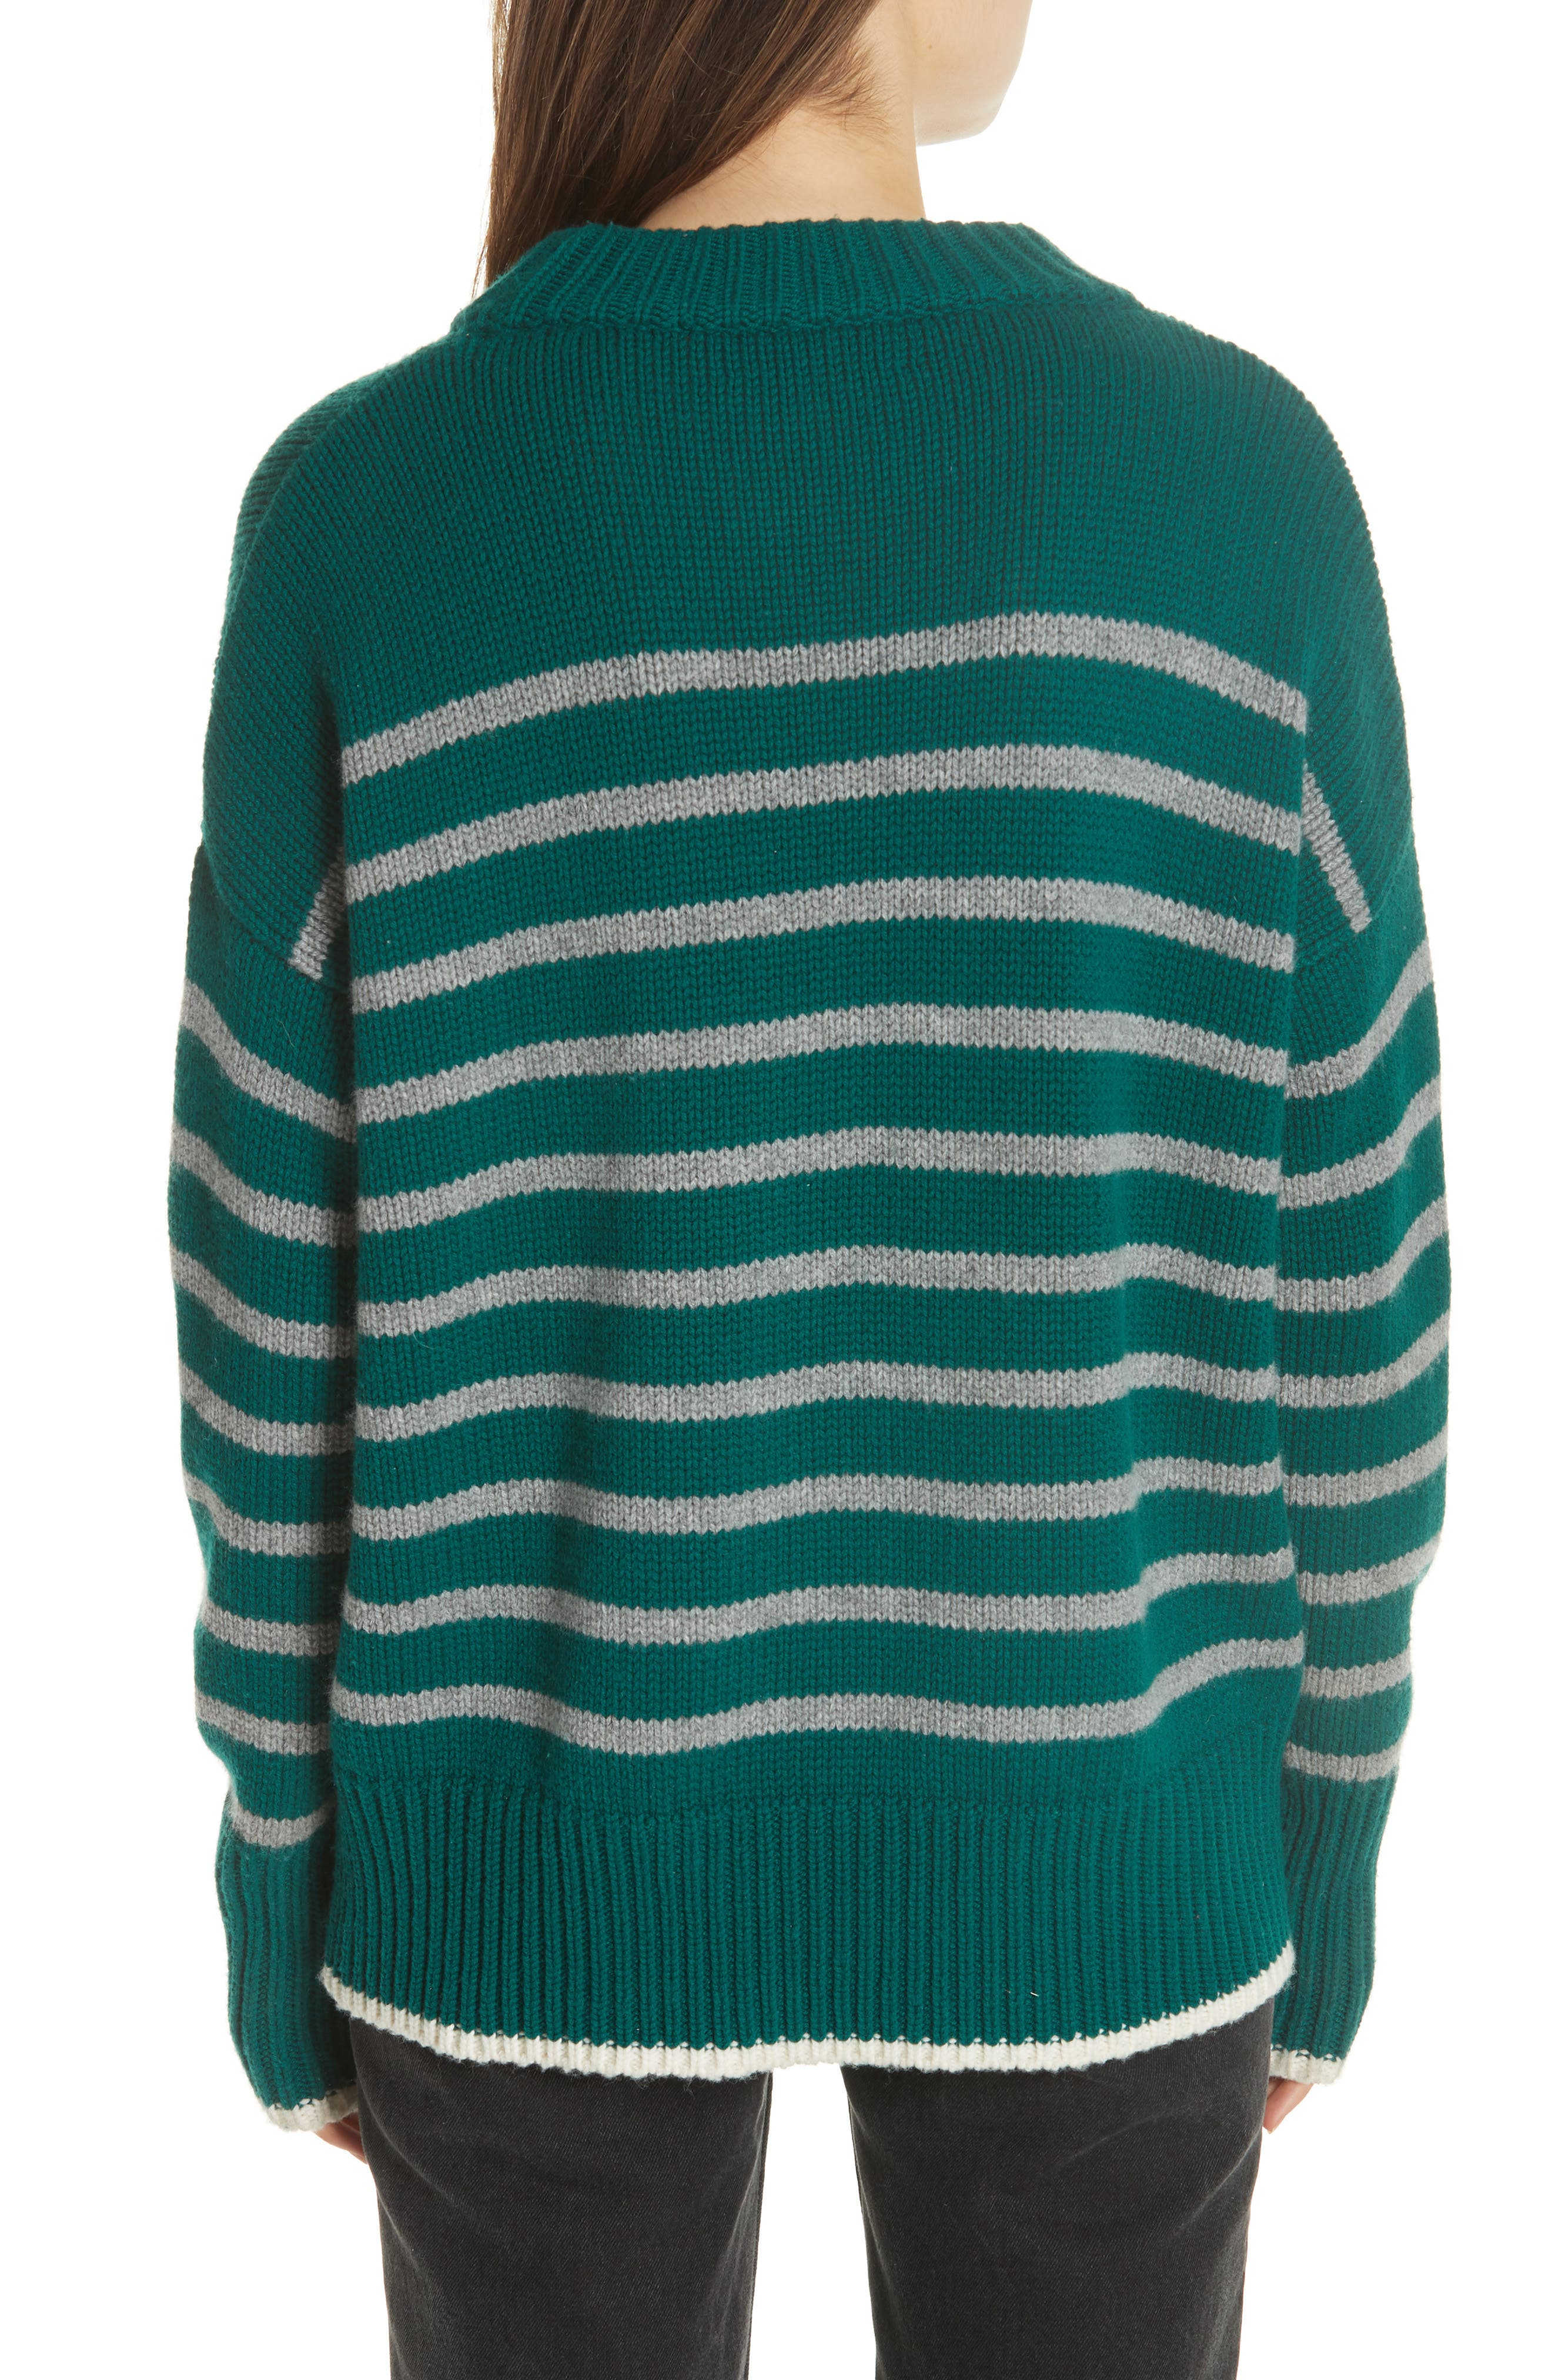 Marin Wool & Cashmere Sweater,                             Alternate thumbnail 2, color,                             FOREST GREEN/ GREY MARLE